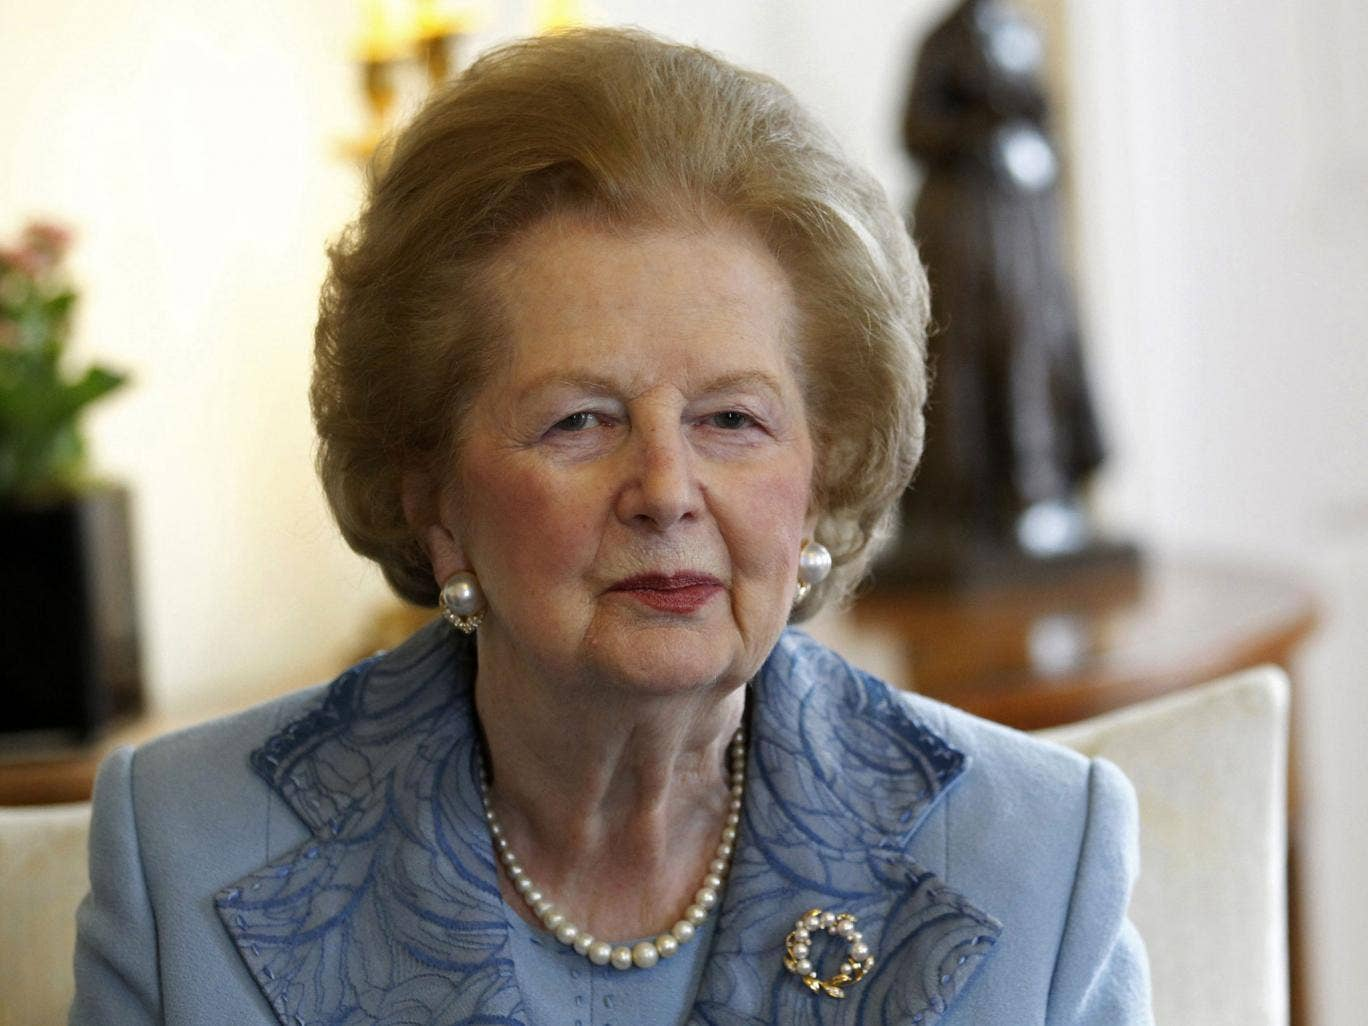 Cameron said Thatcher was 'the greatest British peacetime Prime Minister' - a claim with which British people tend to disagree